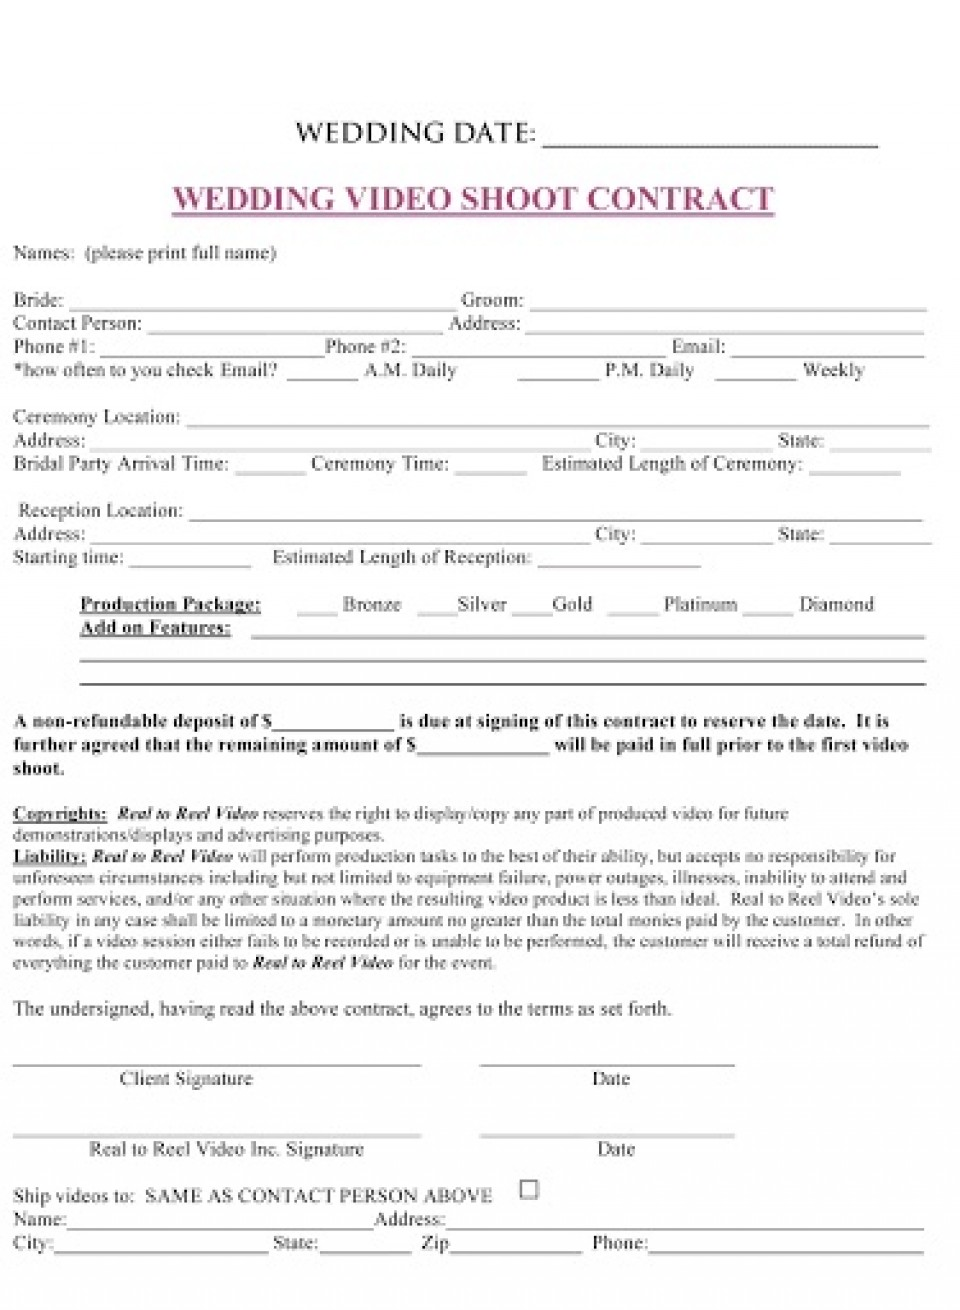 009 Sensational Wedding Videography Contract Template Concept  Pdf Example Word960